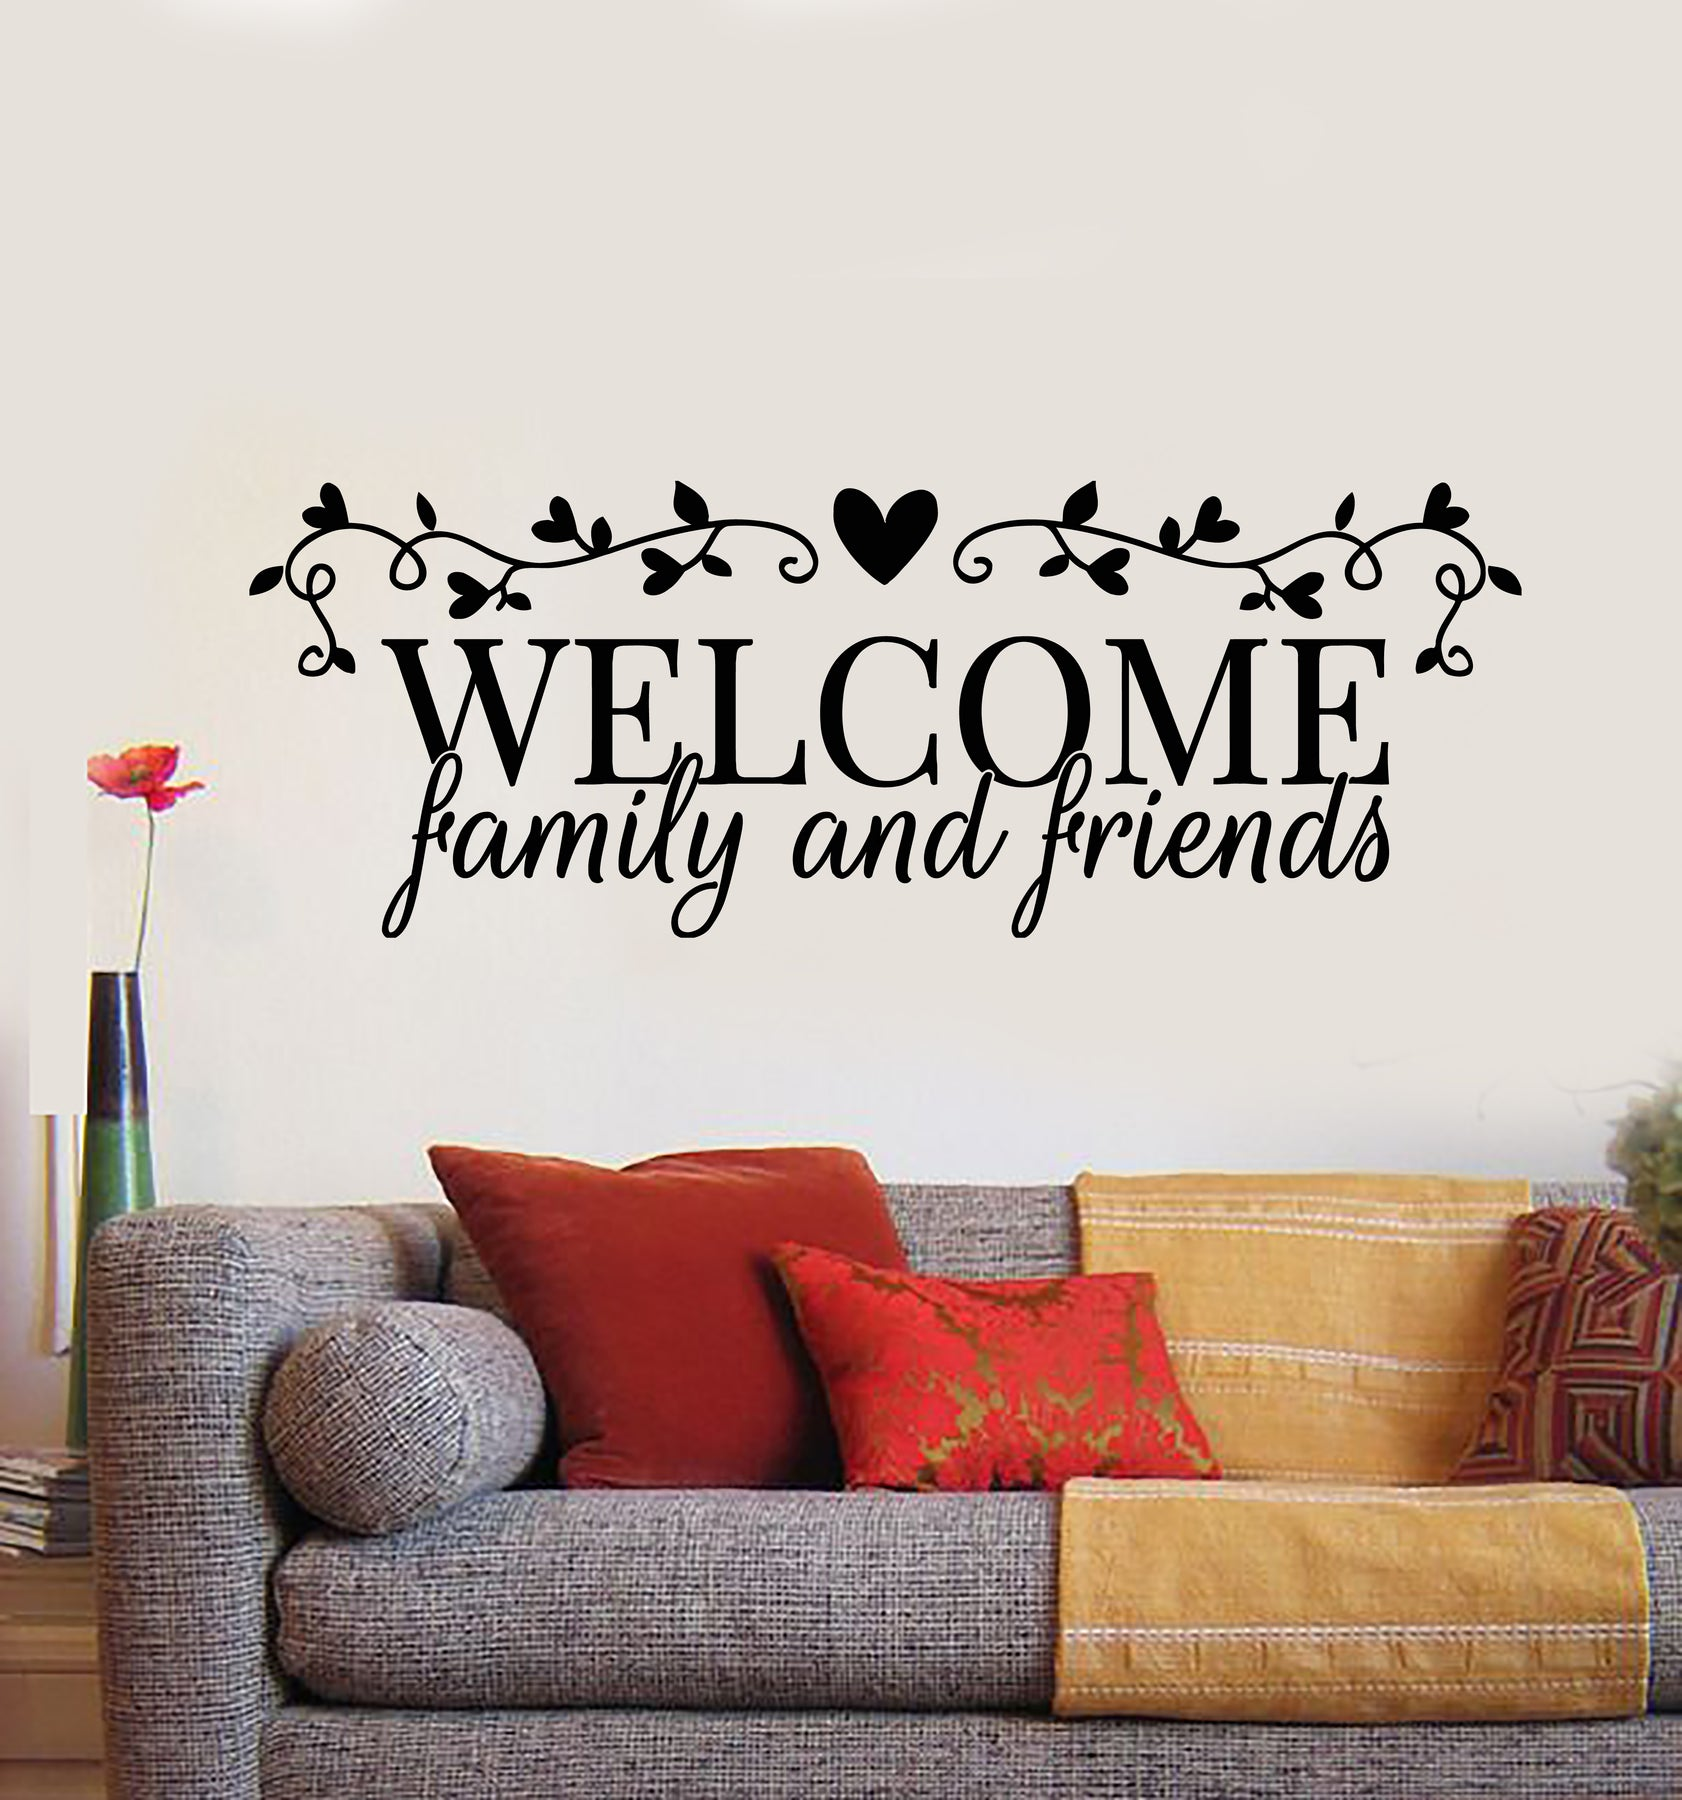 Vinyl Wall Decal Welcome Family And Friends Quote Words House Decor St Wallstickers4you